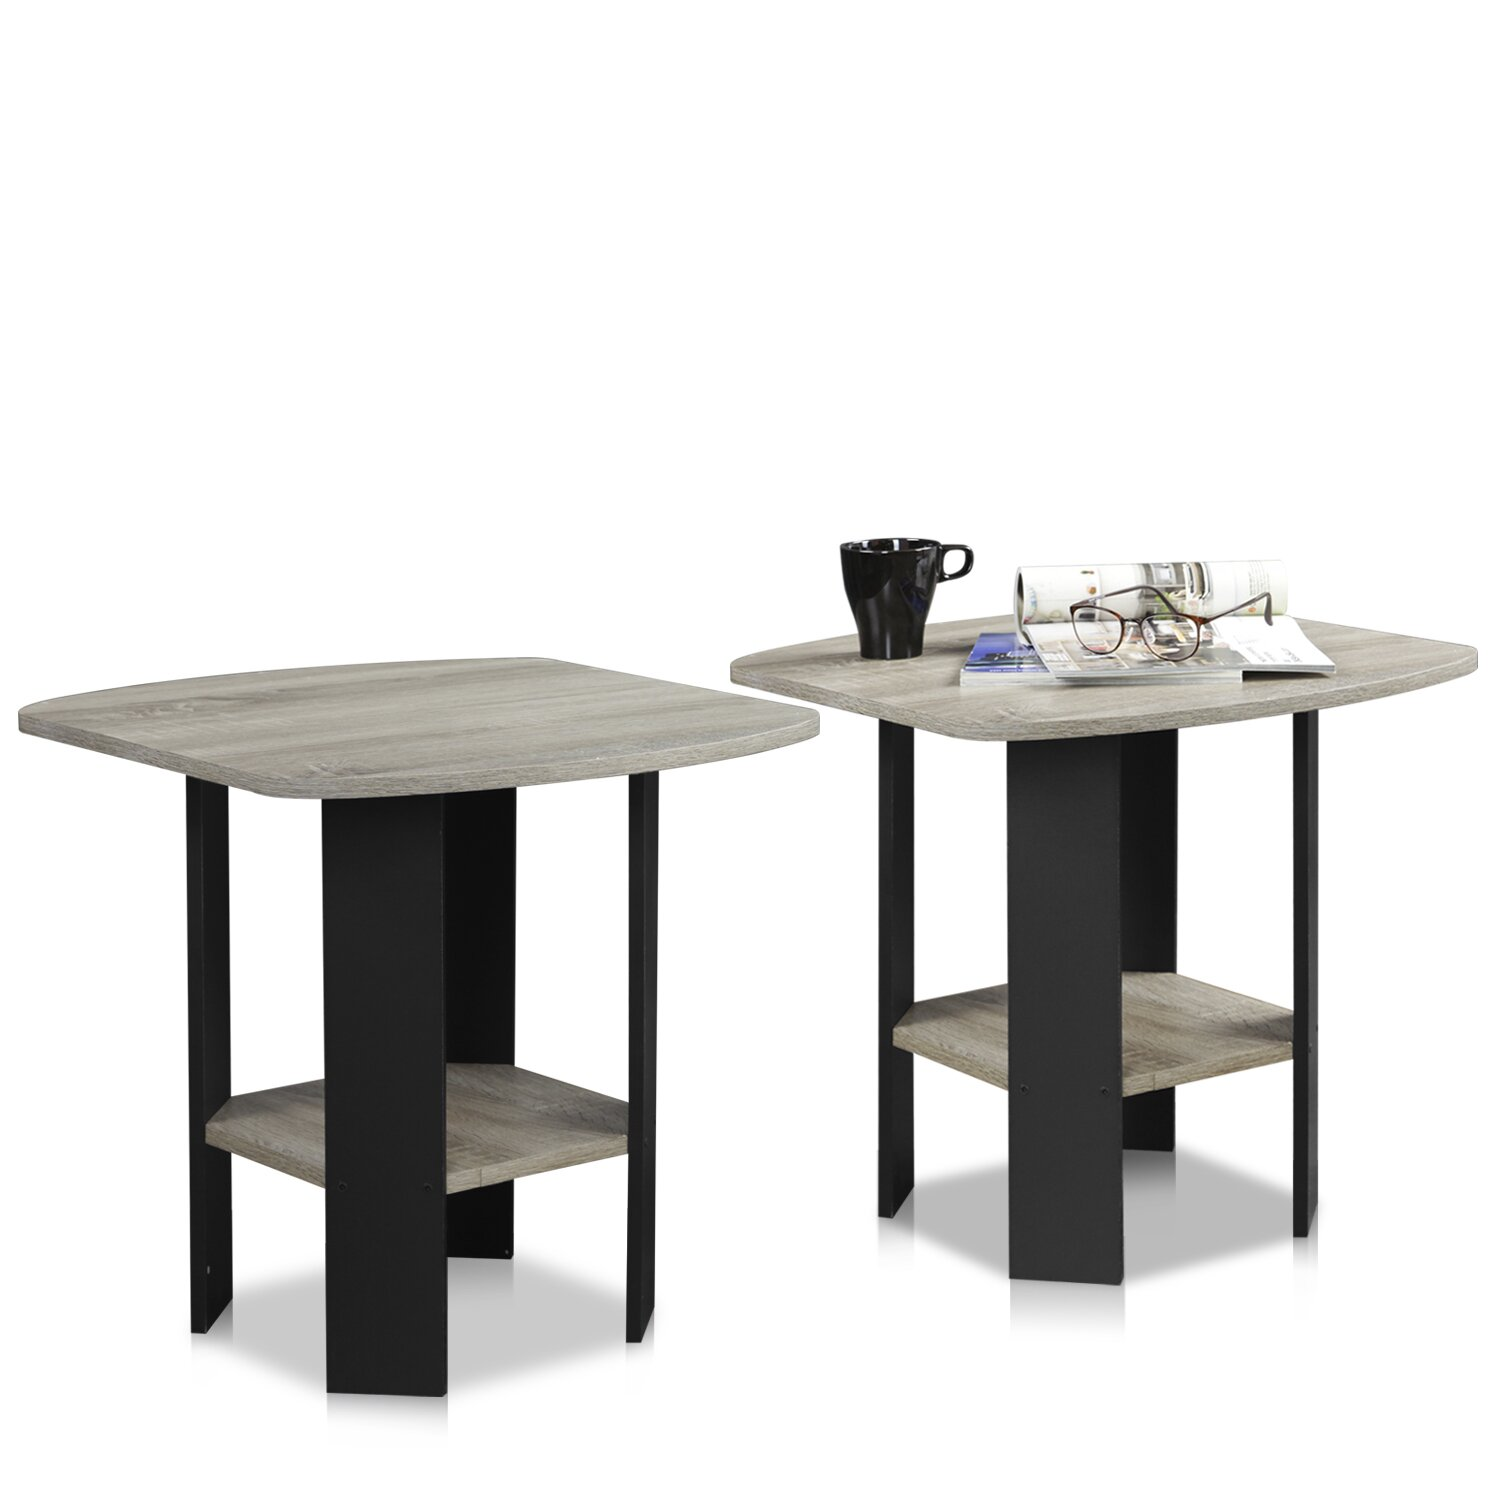 Furinno simple end table reviews wayfair for Simple end table